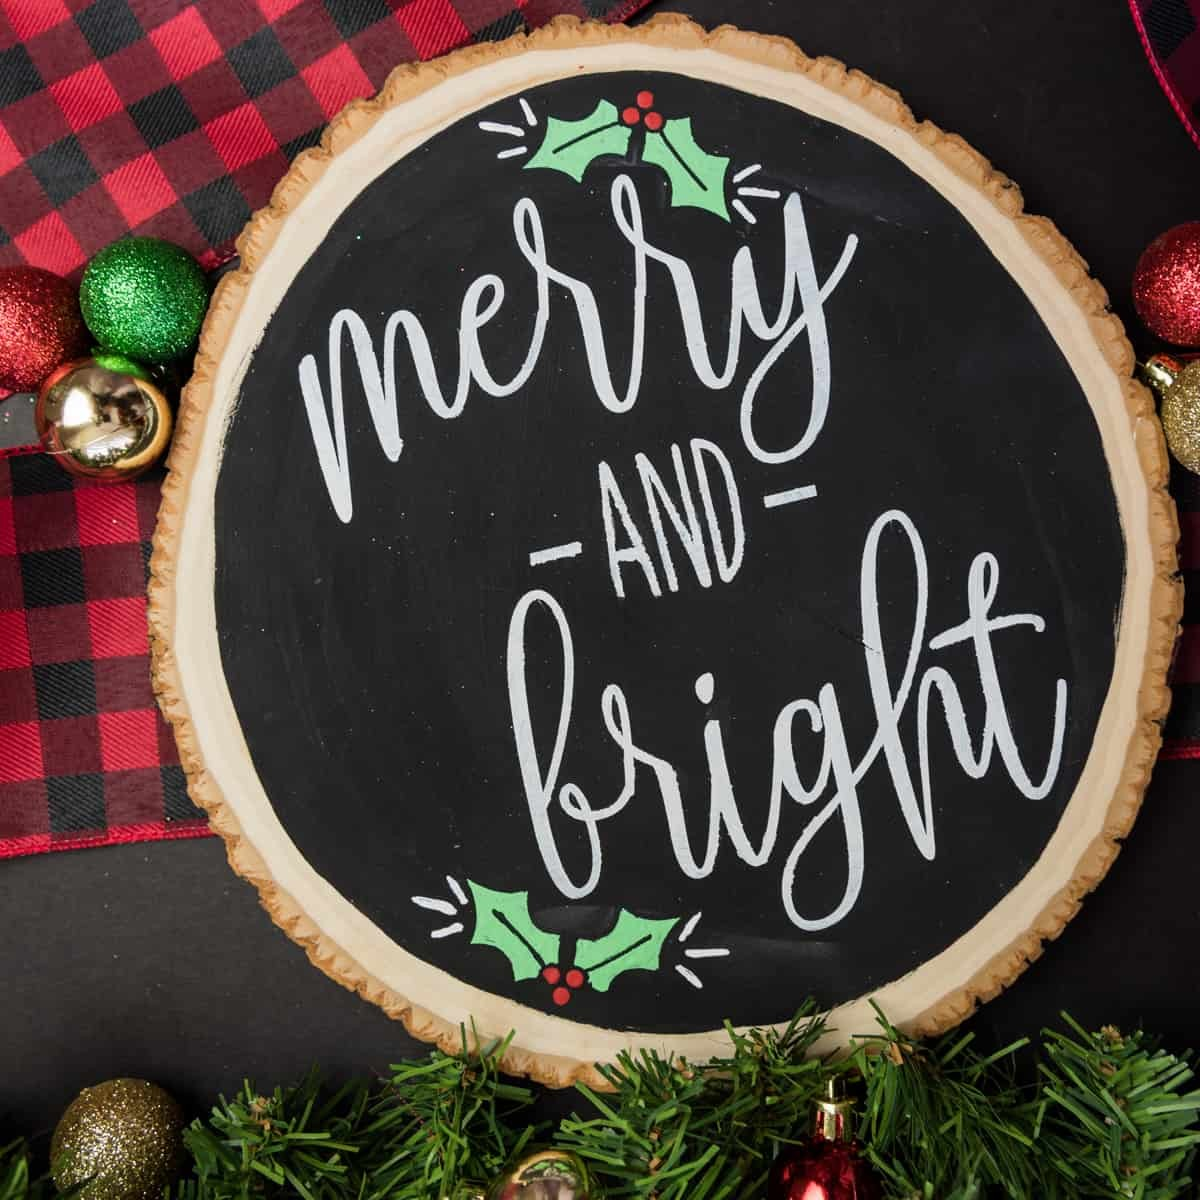 Merry and Bright Christmas Sign - I love saving room and money on Christmas decorations and reversible signs are the perfect way to do both! Using your cutting machine you can repurpose old holiday decor with a new rustic and minimalist design! Free SVG + PNG + DXF file included so you can make one too.